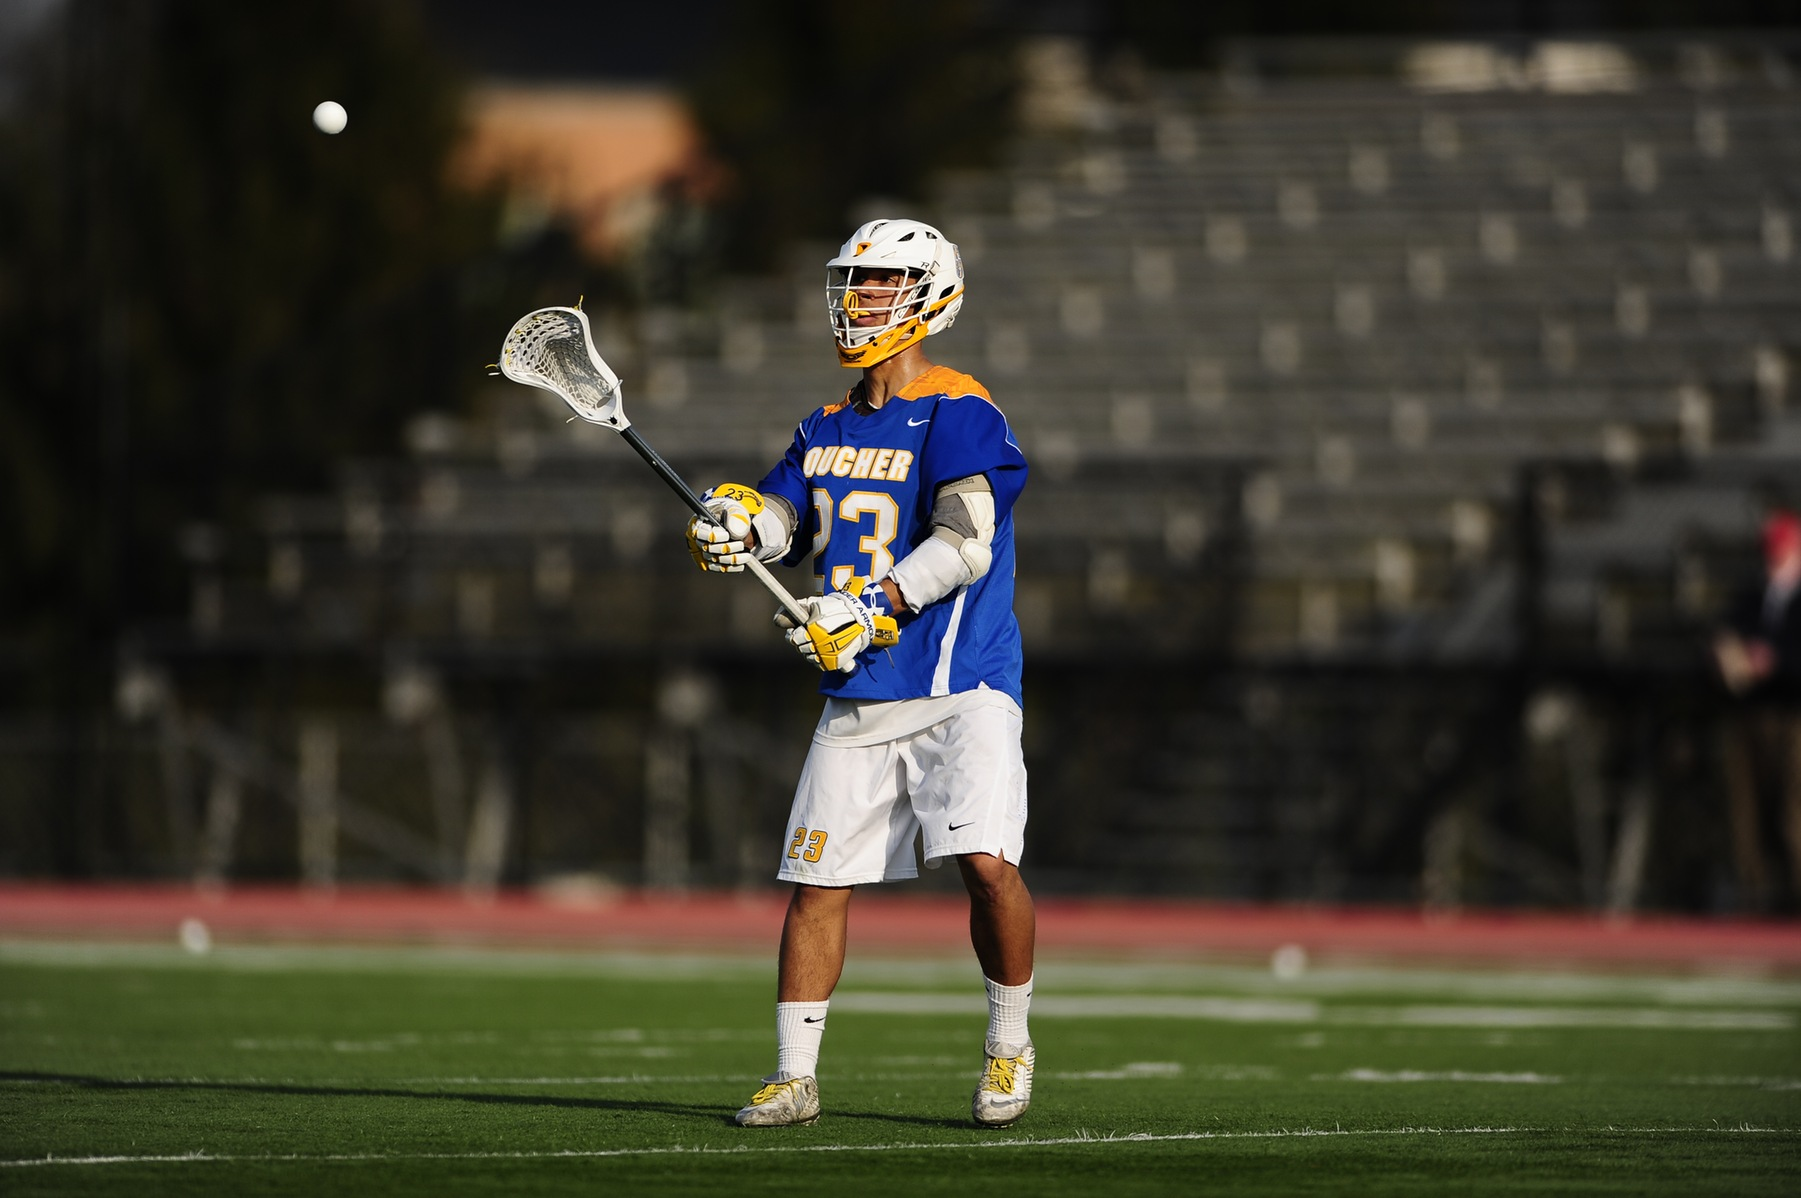 Goucher Holds Off Bryn Athyn 10-8 at Home